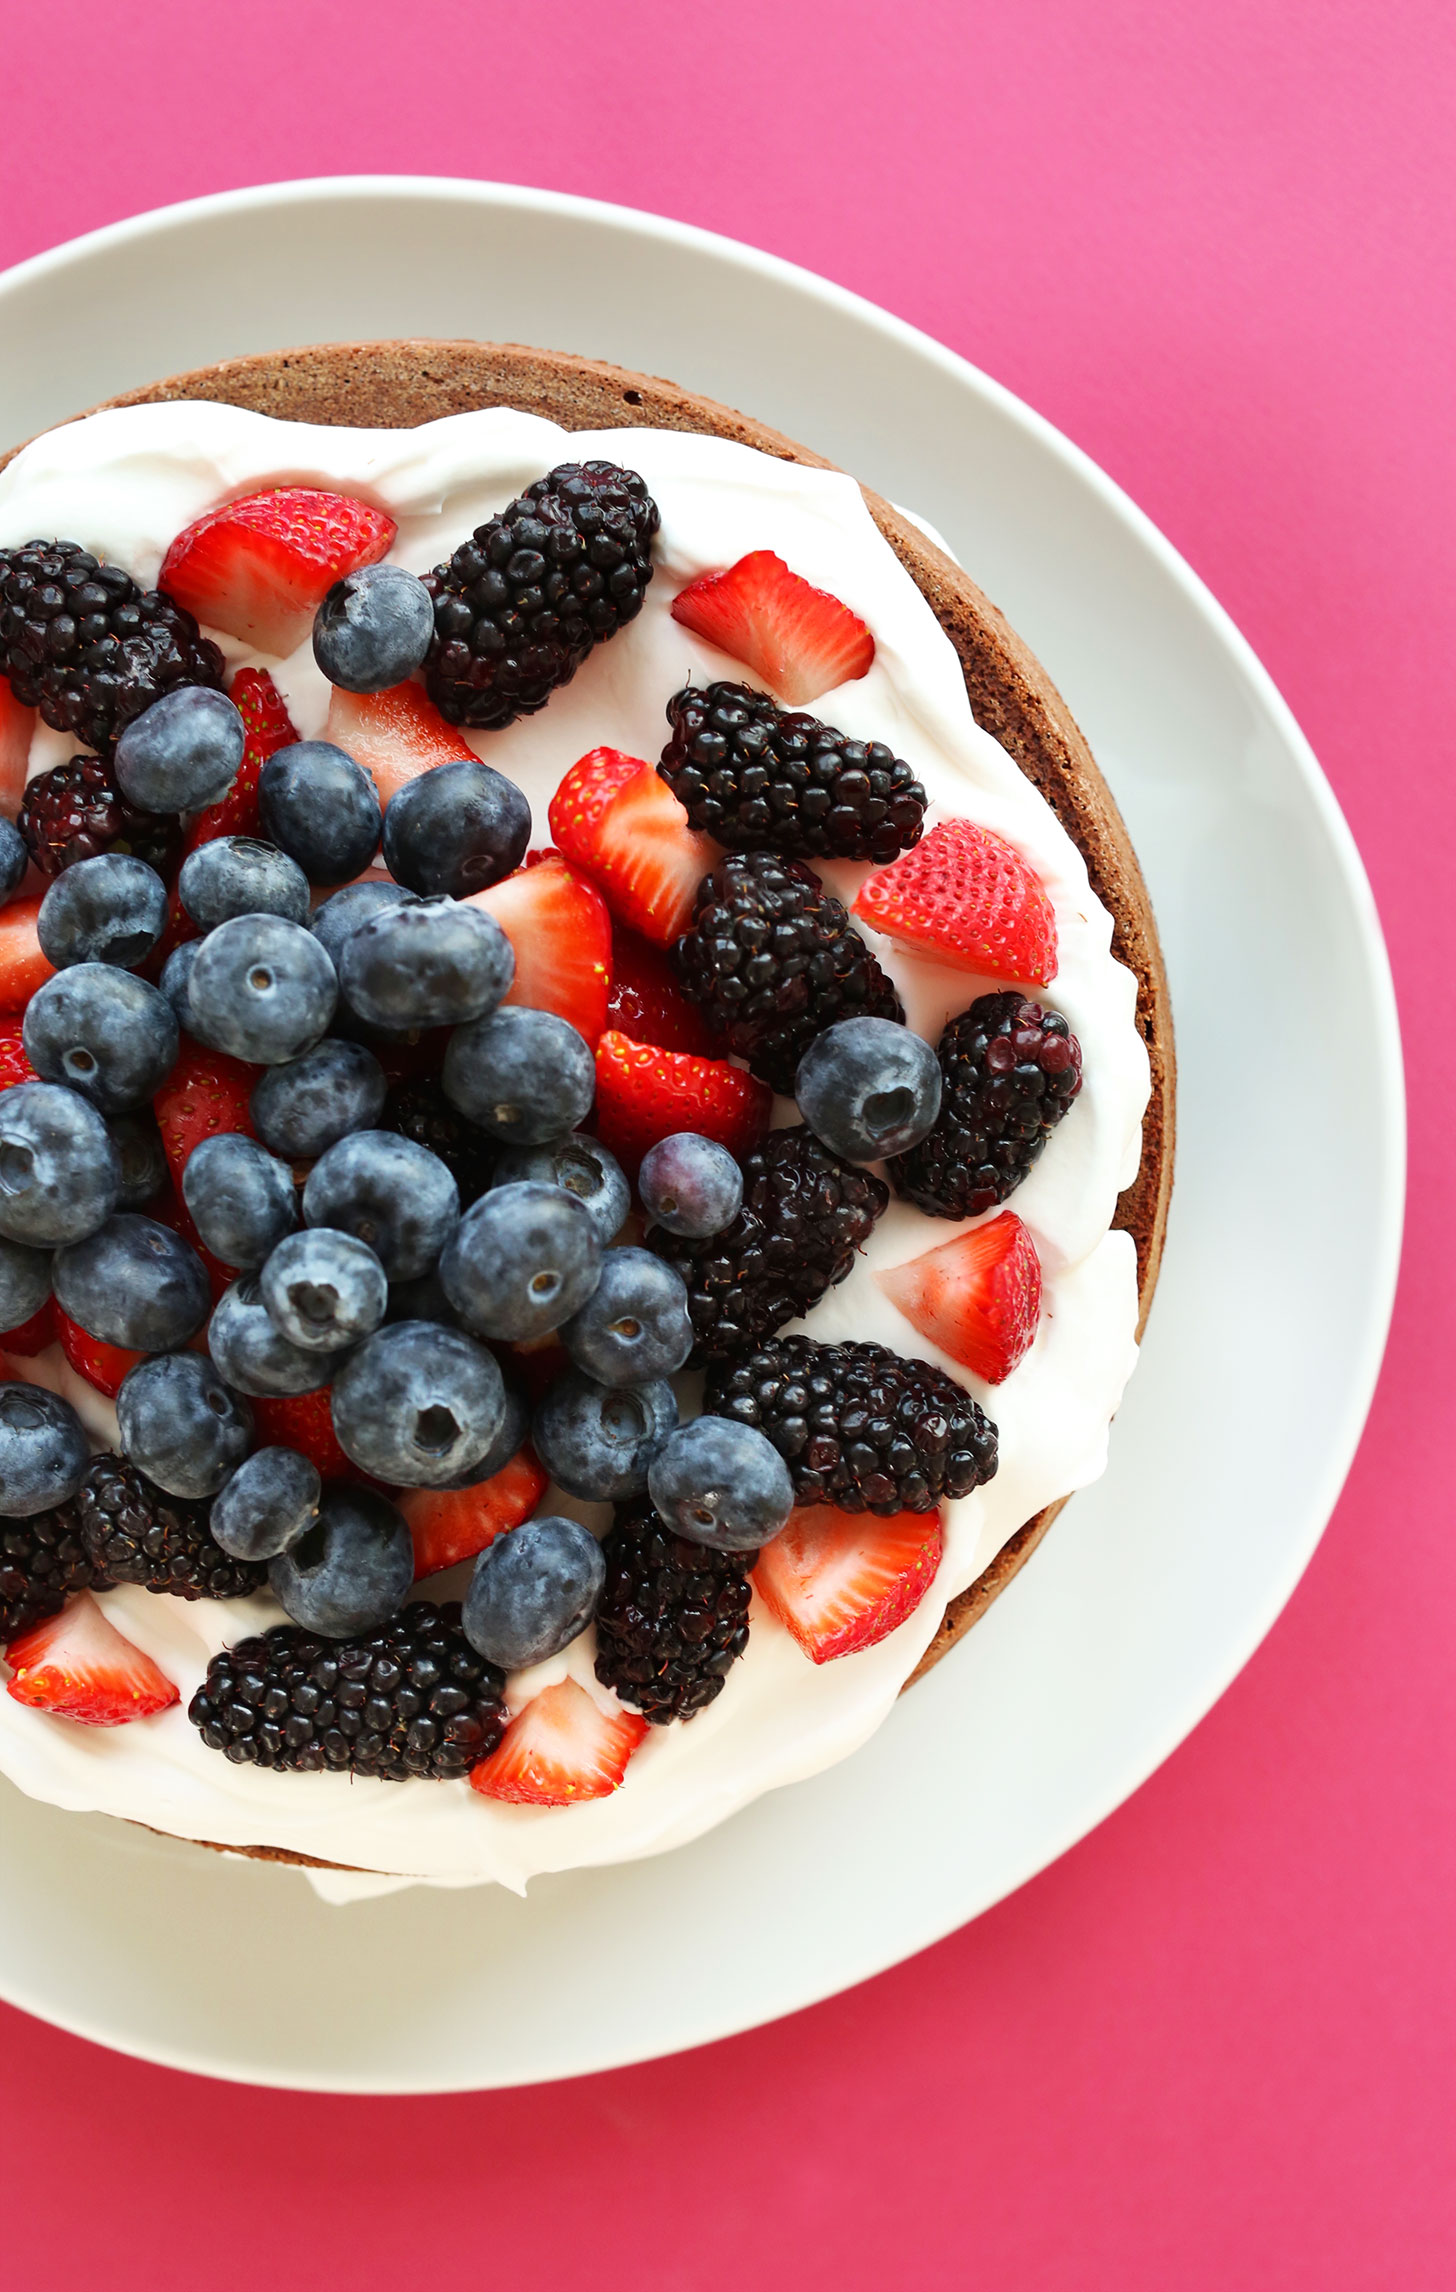 Plate of gluten-free vegan Chocolate Cake with Coconut Whip and Berries